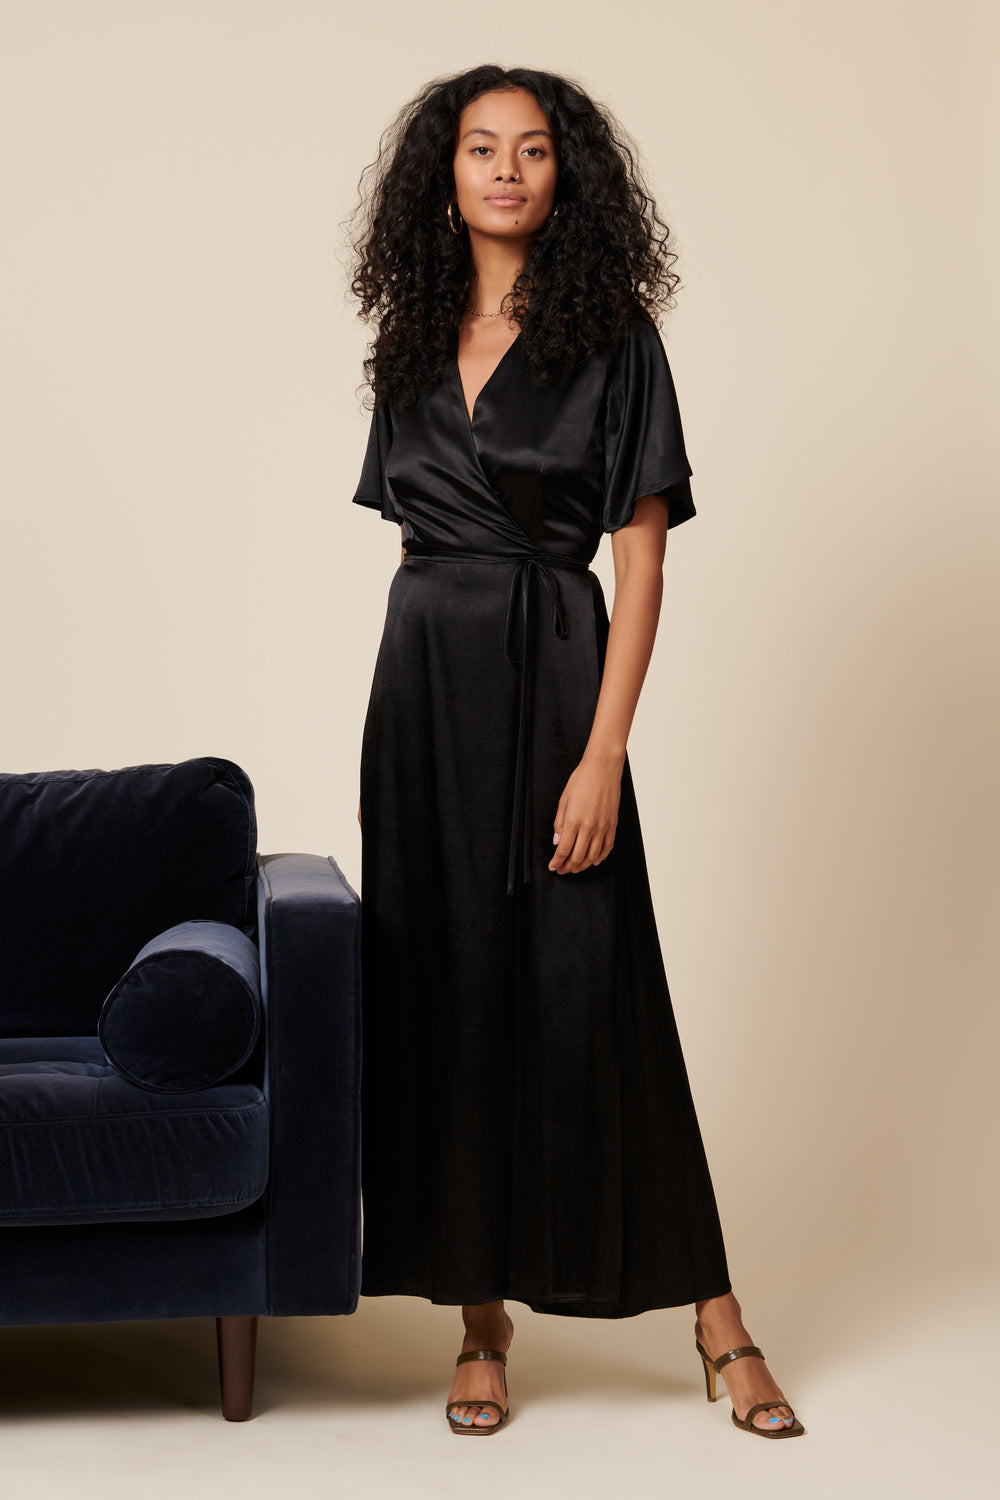 Lola Wrap Dress in Black - Whimsy & Row